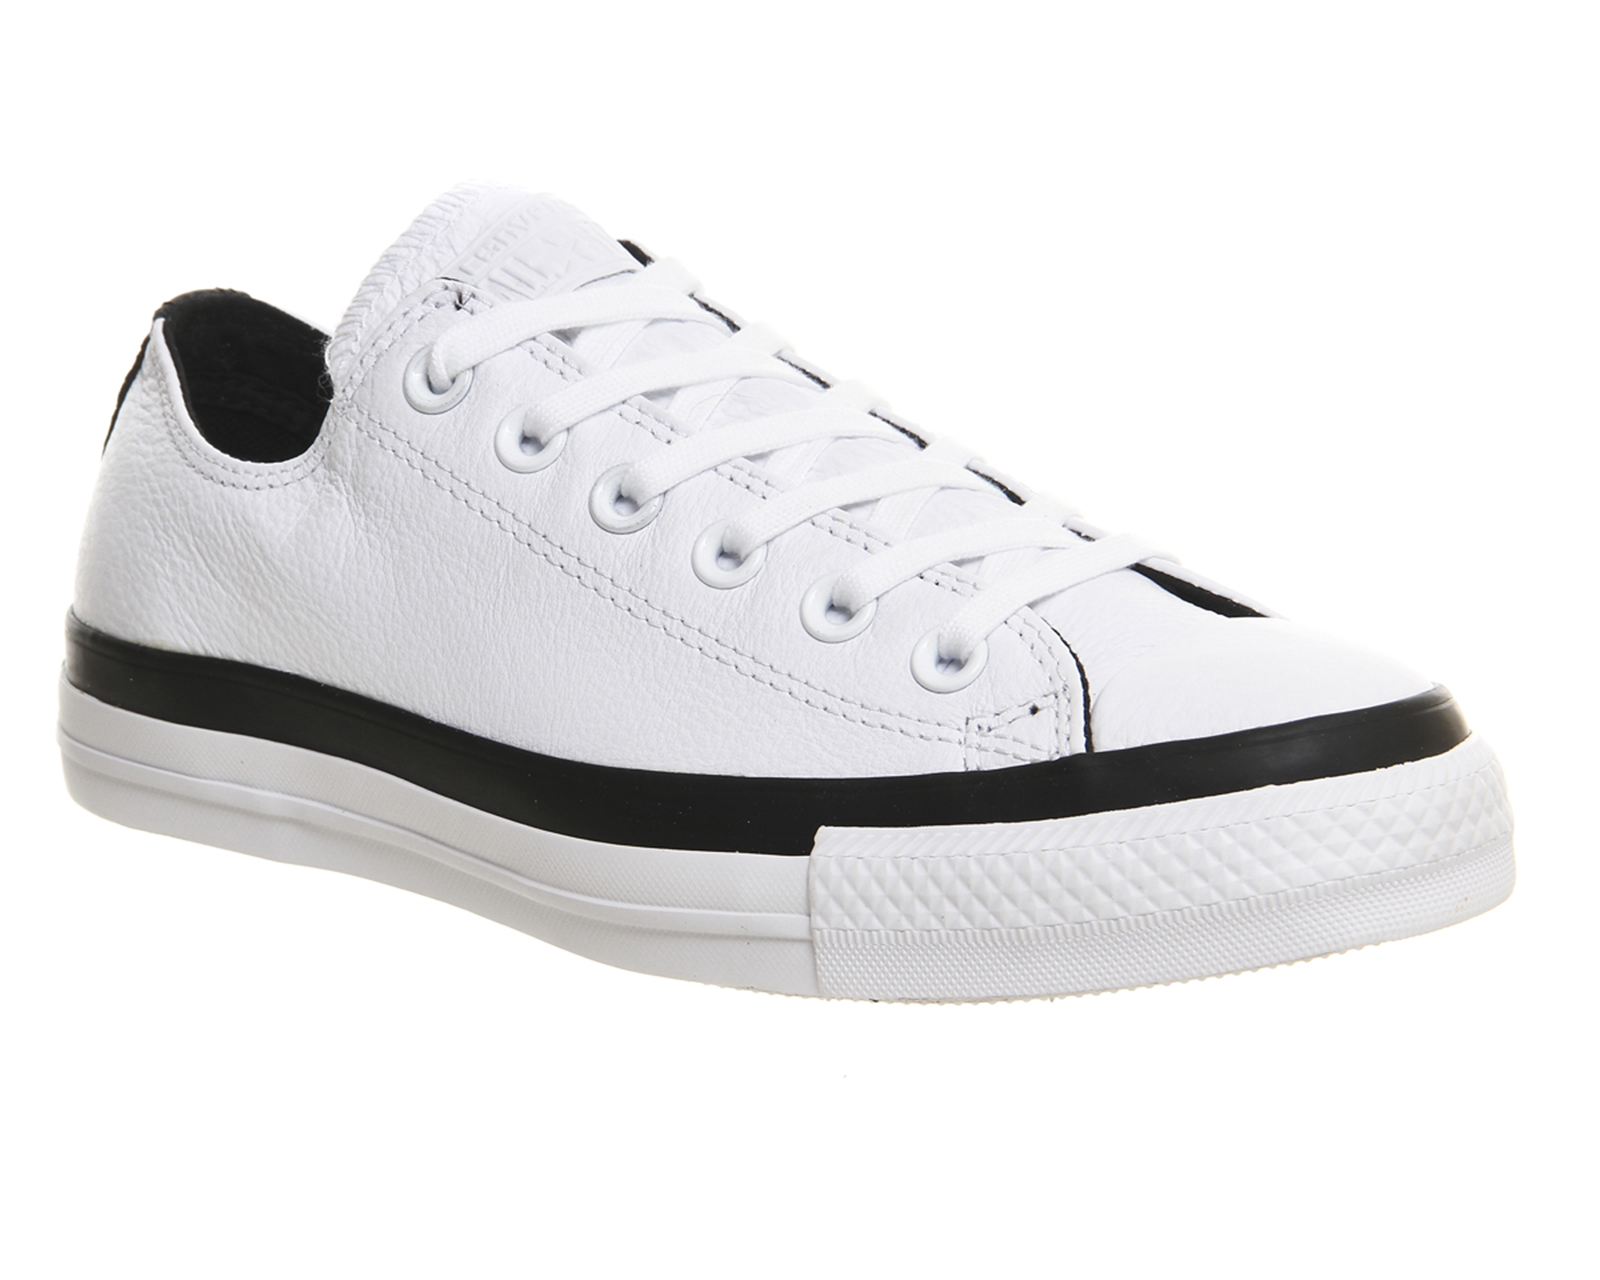 converse we love you chucks marketing case Case we googled you the problem that we need to evaluate is the recruitment practices for a new position in the country of china for the company hathaway jones fred western is the ceo of hathaway jones.